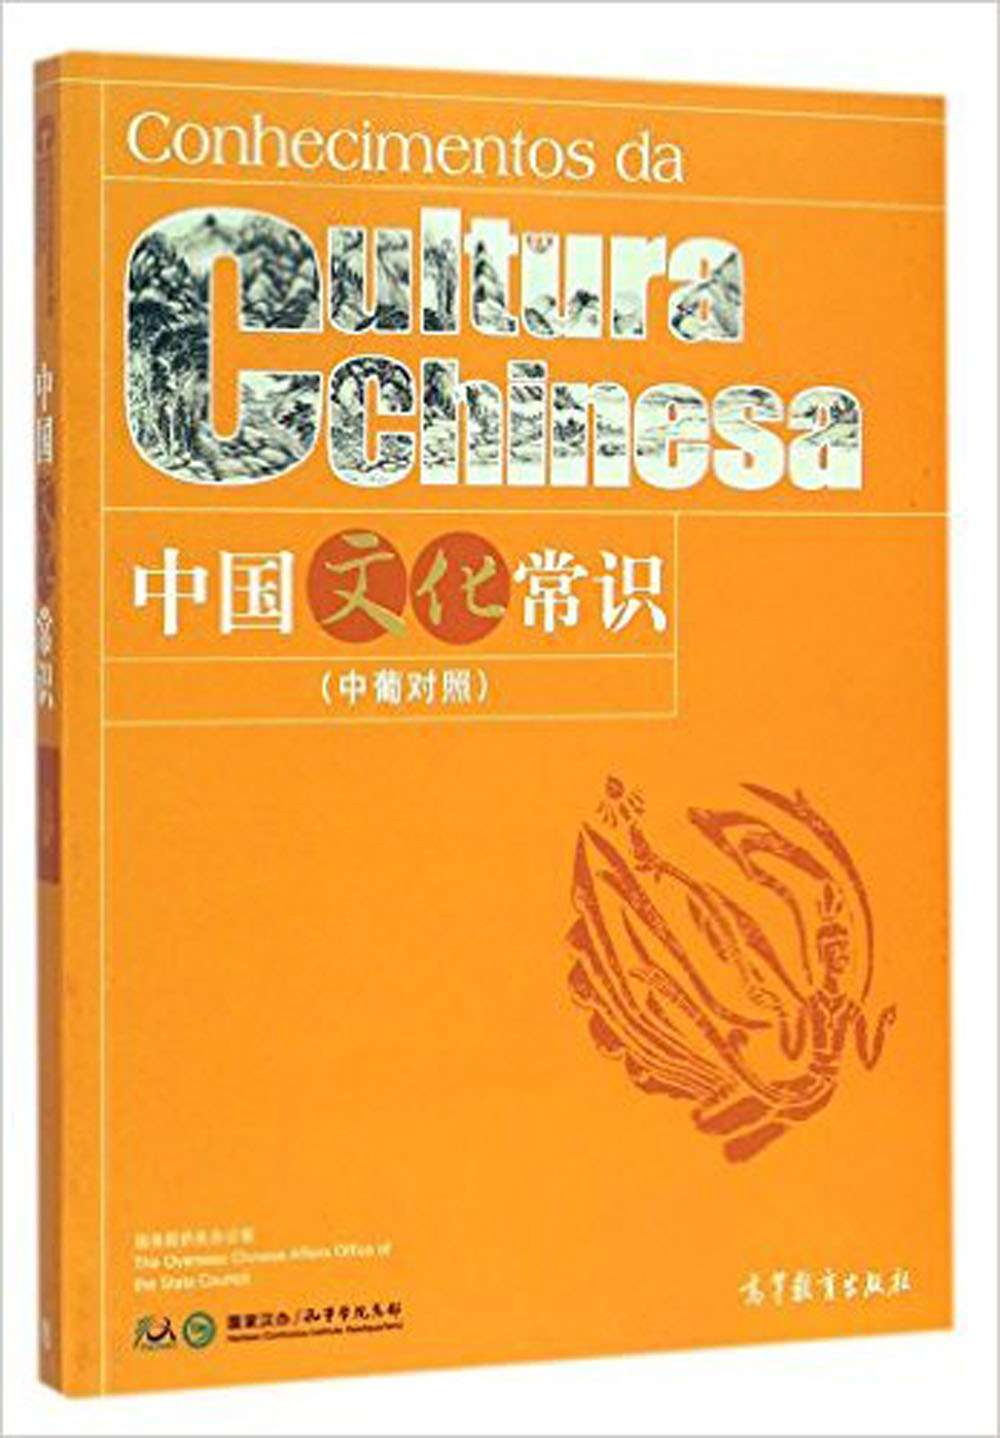 Common Knowledge about Chinese Culture (Language In Chinese and Portuguese) 281 Page for adult learn chinese culture ru content about festival info html page 9